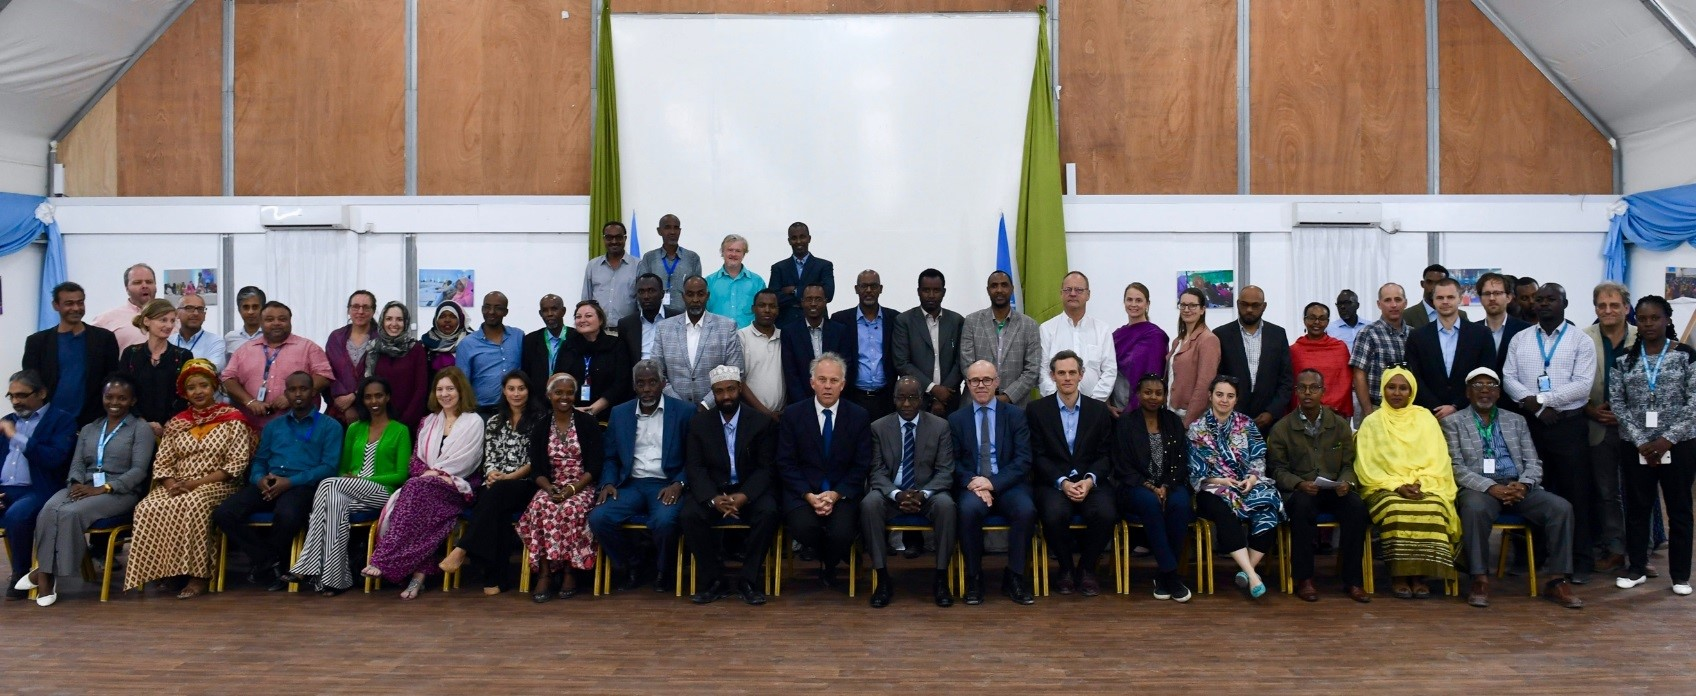 Mett Waldman, Eric Lane Fellow, chairing a United Nations Colloquium on Peace and Reconciliation in Somalia